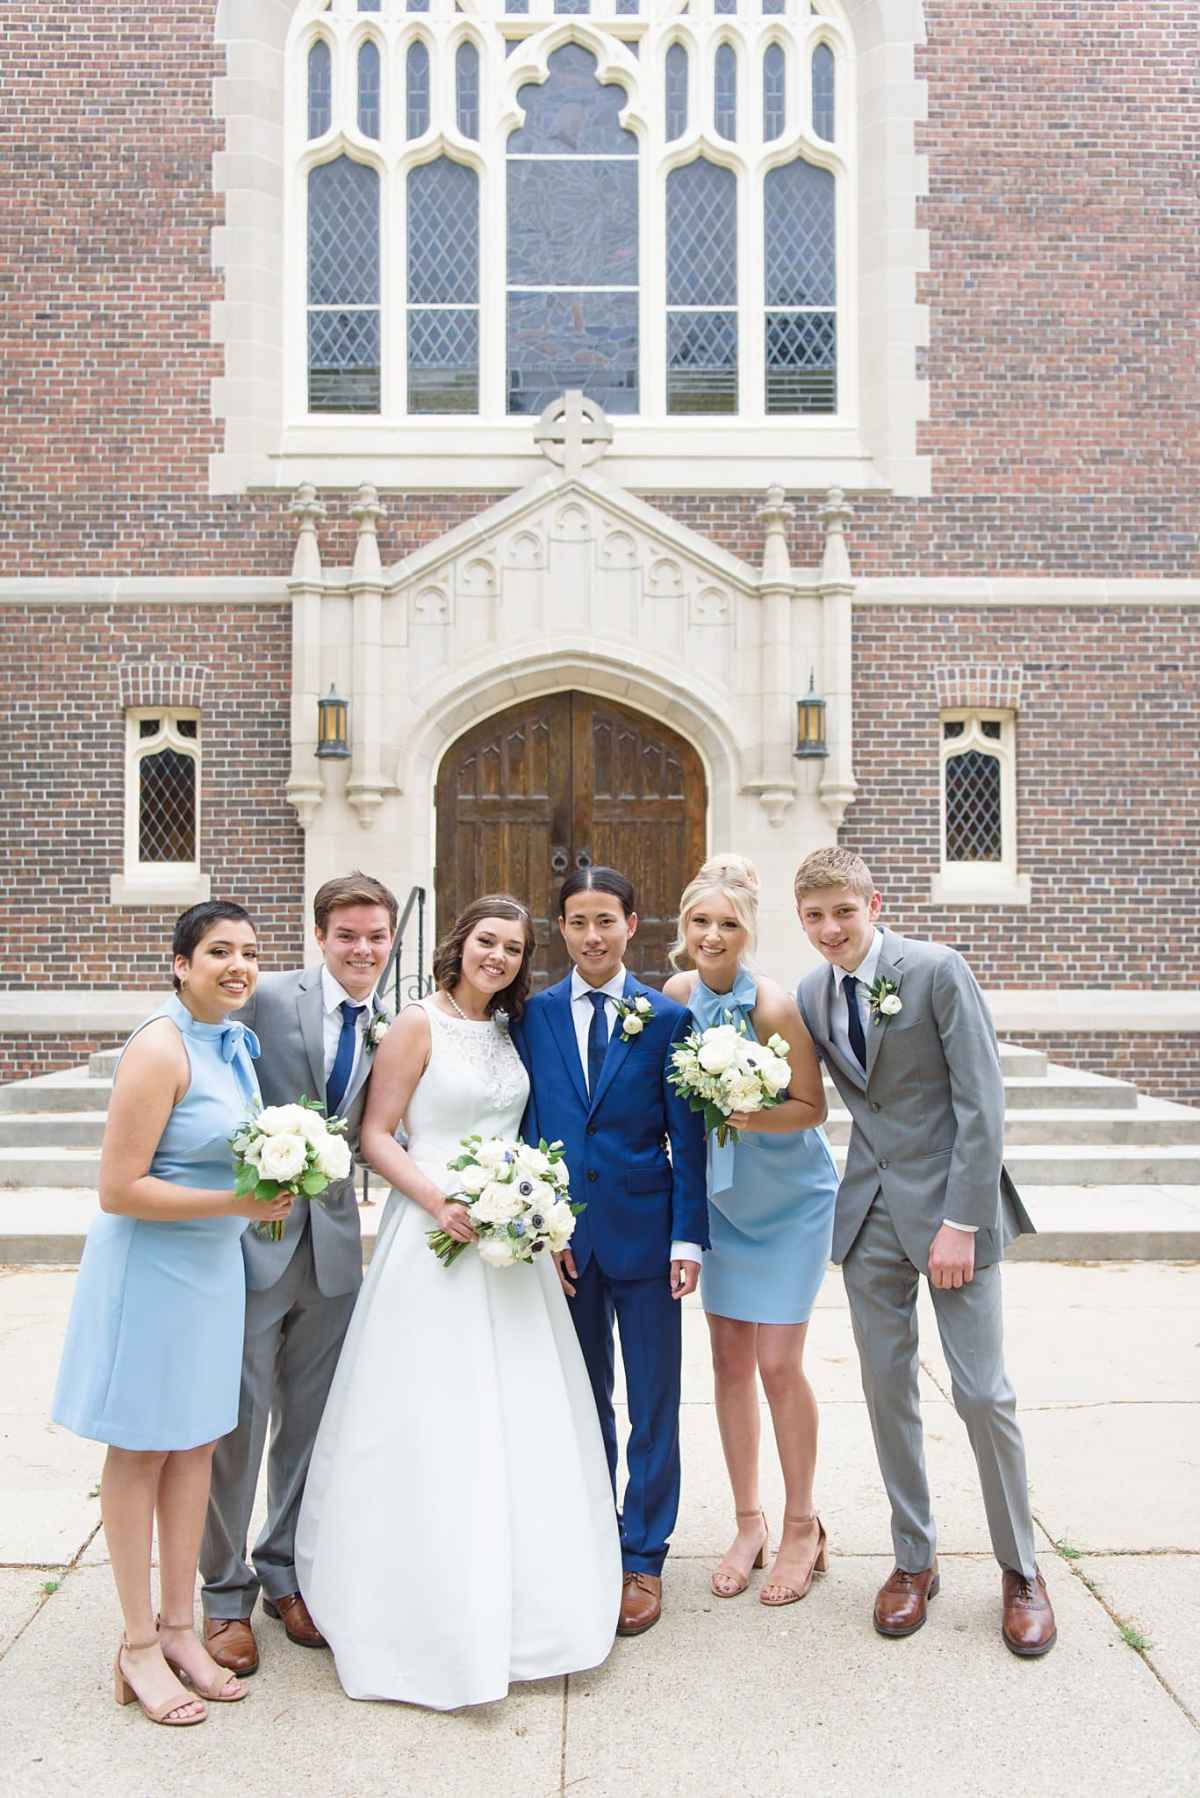 Bridal party celebrates with bride and groom in front of herrick chapel after grinnell college graduation in the morning, and a wedding in the afternoon.